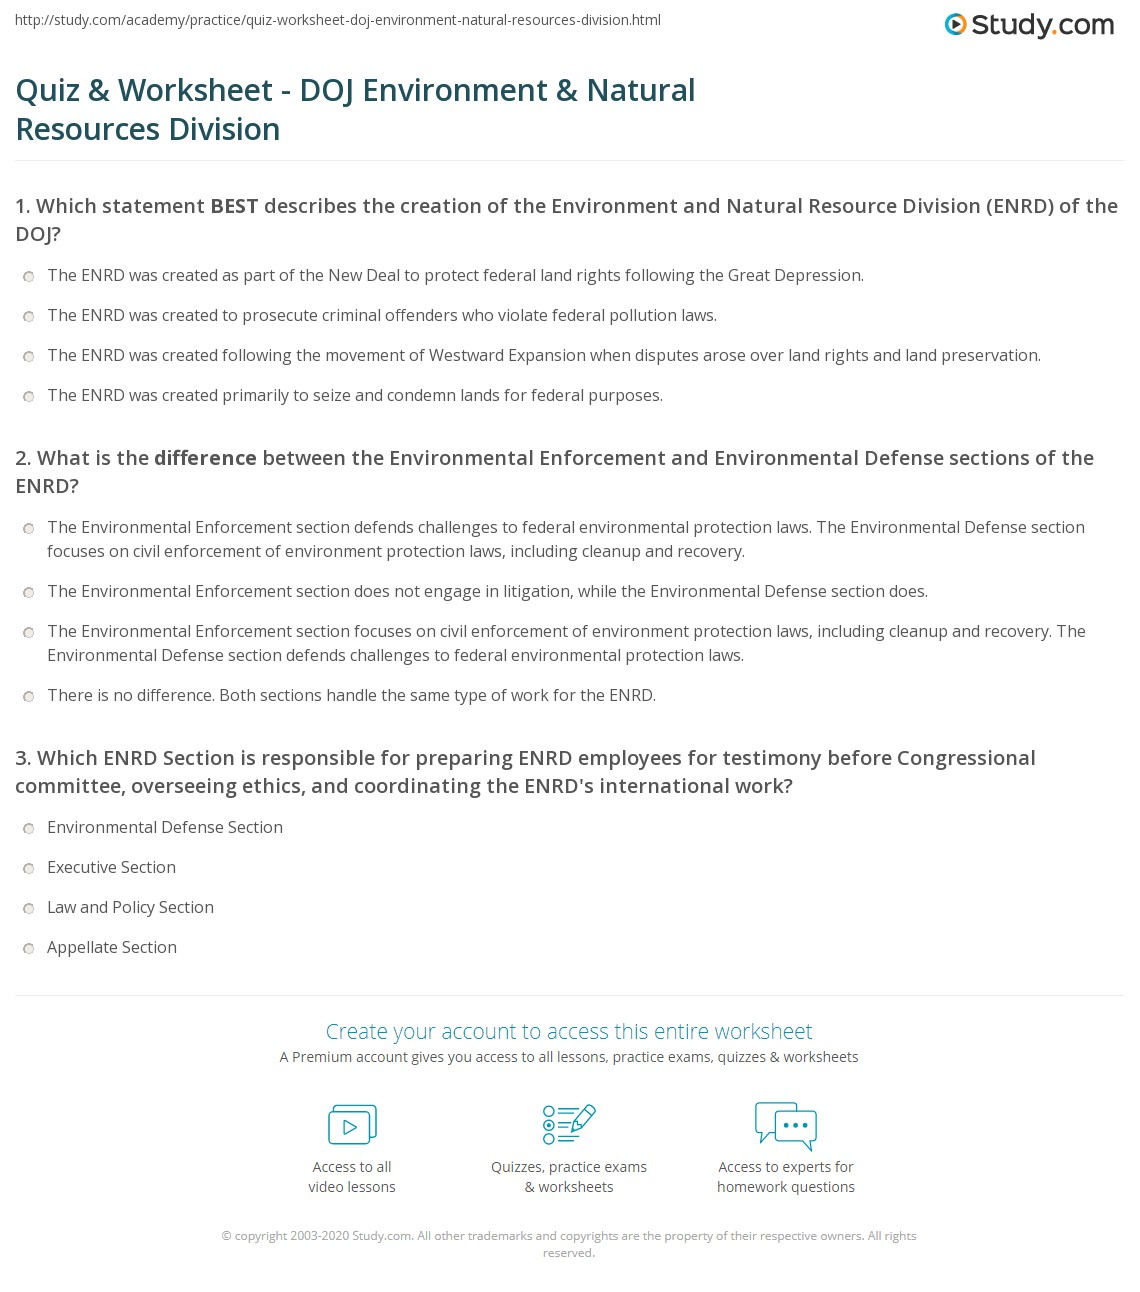 Department Of Justice Environmental And Natural Resources Division